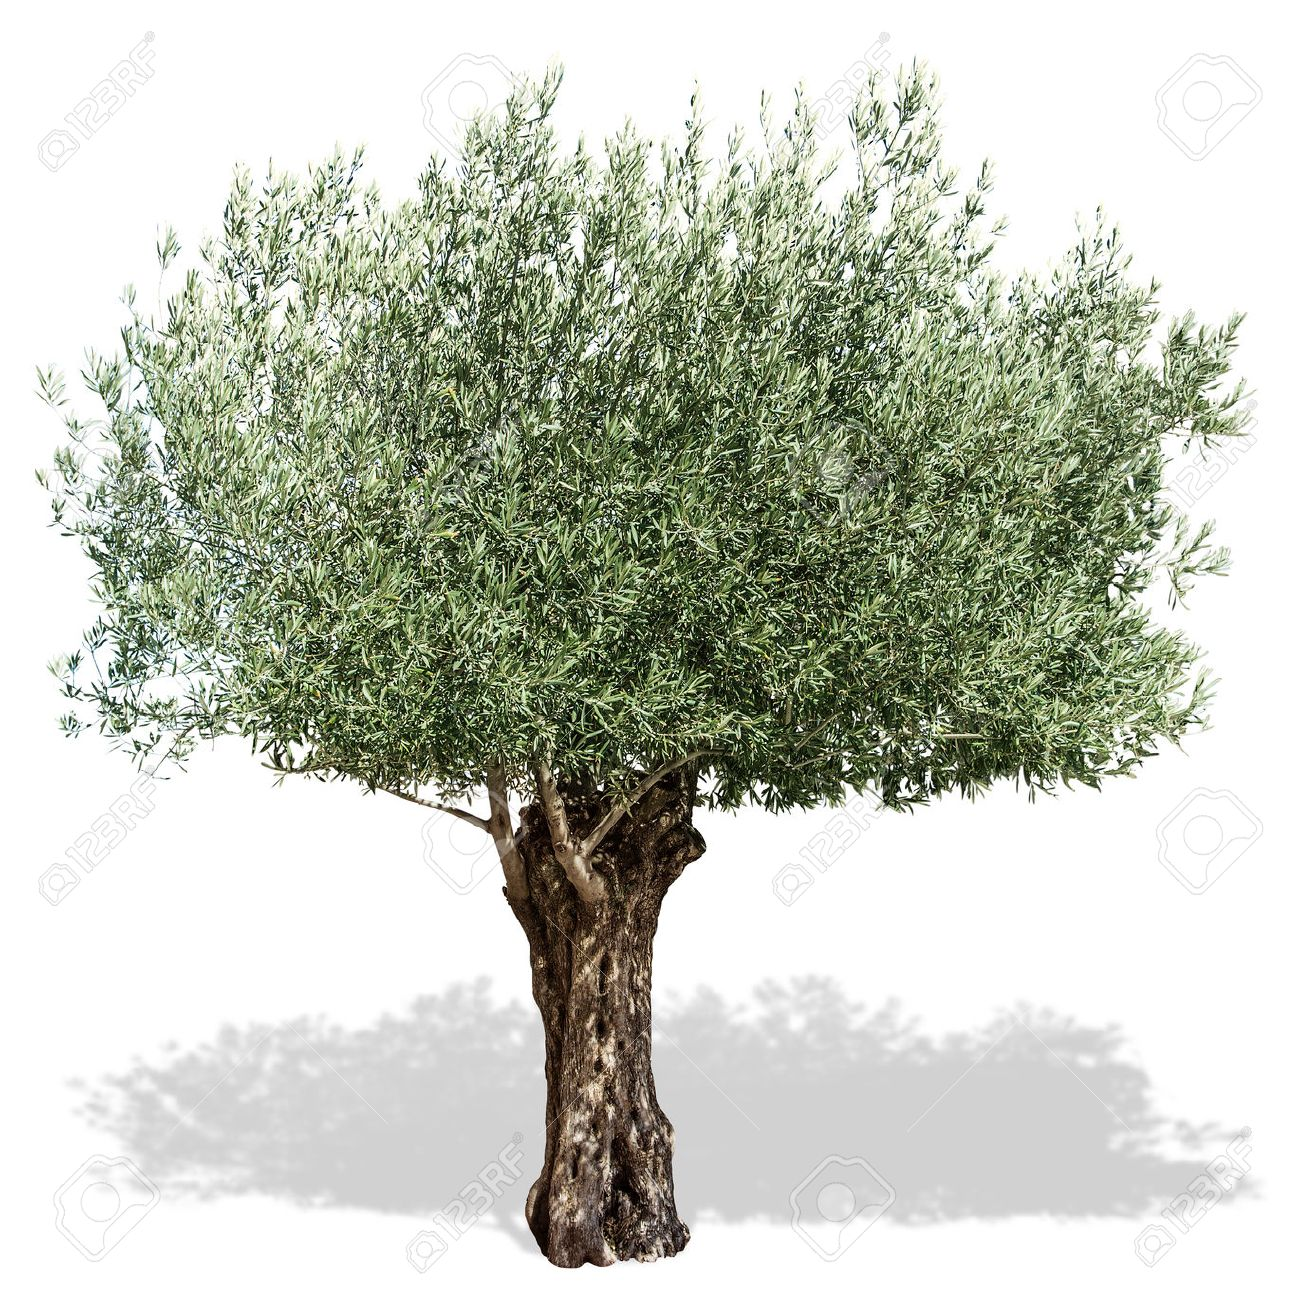 Olive tree on a white background. Clipping path. - 55719721